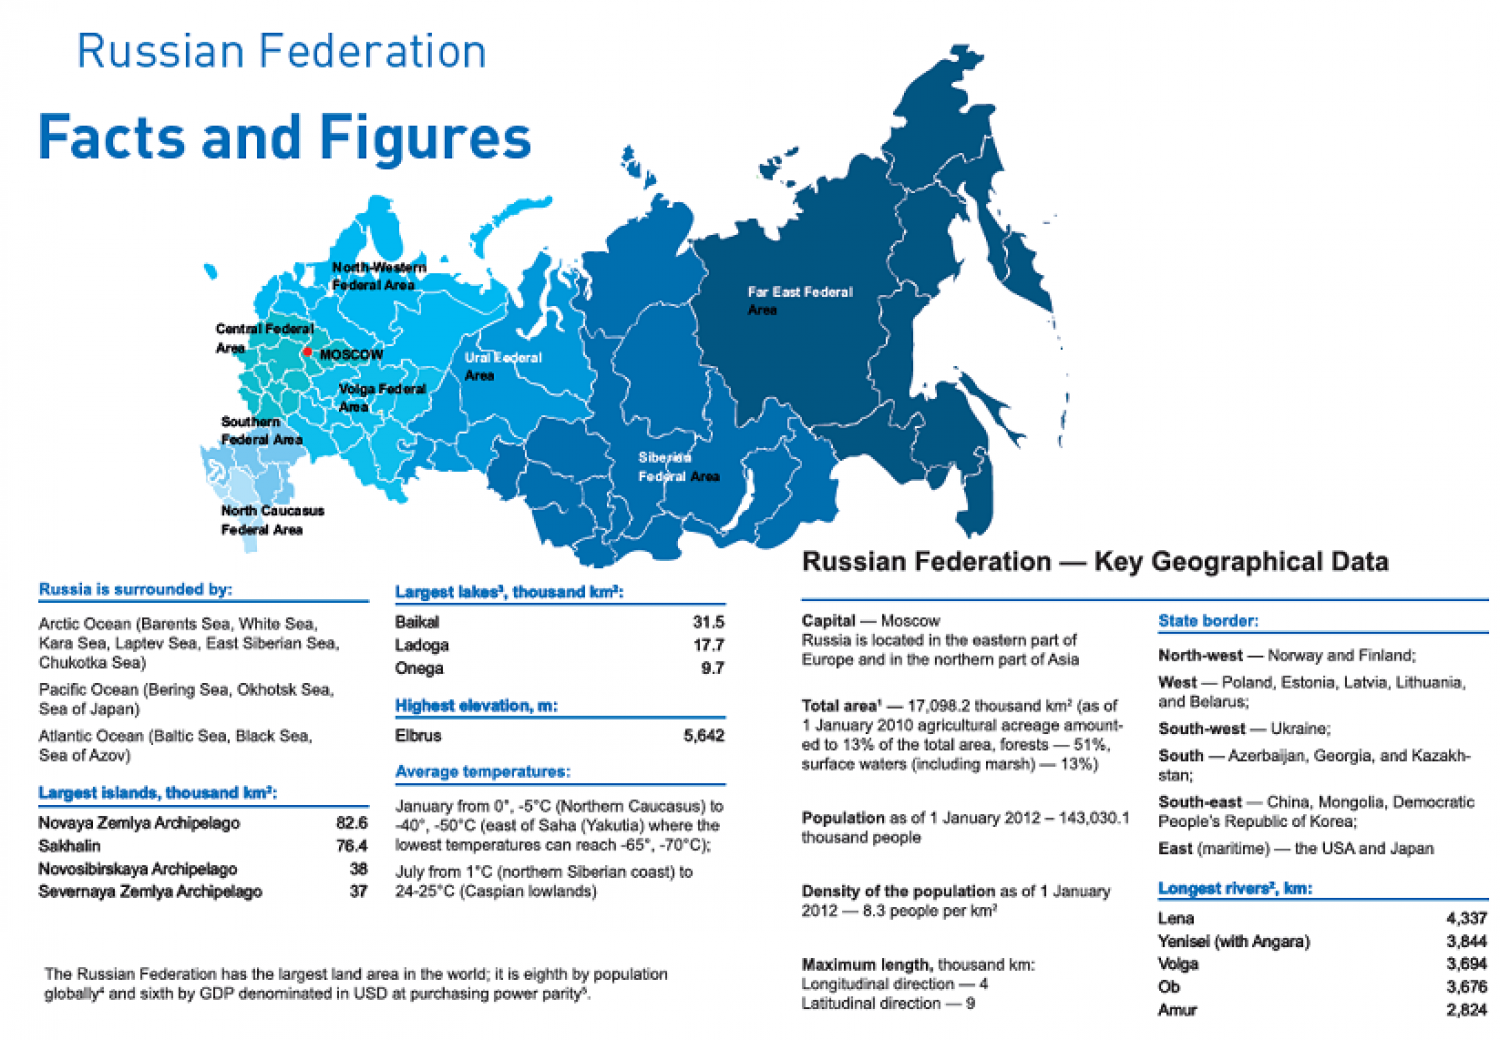 RUSSIAN FEDERATION : Facts and Figures Infographic